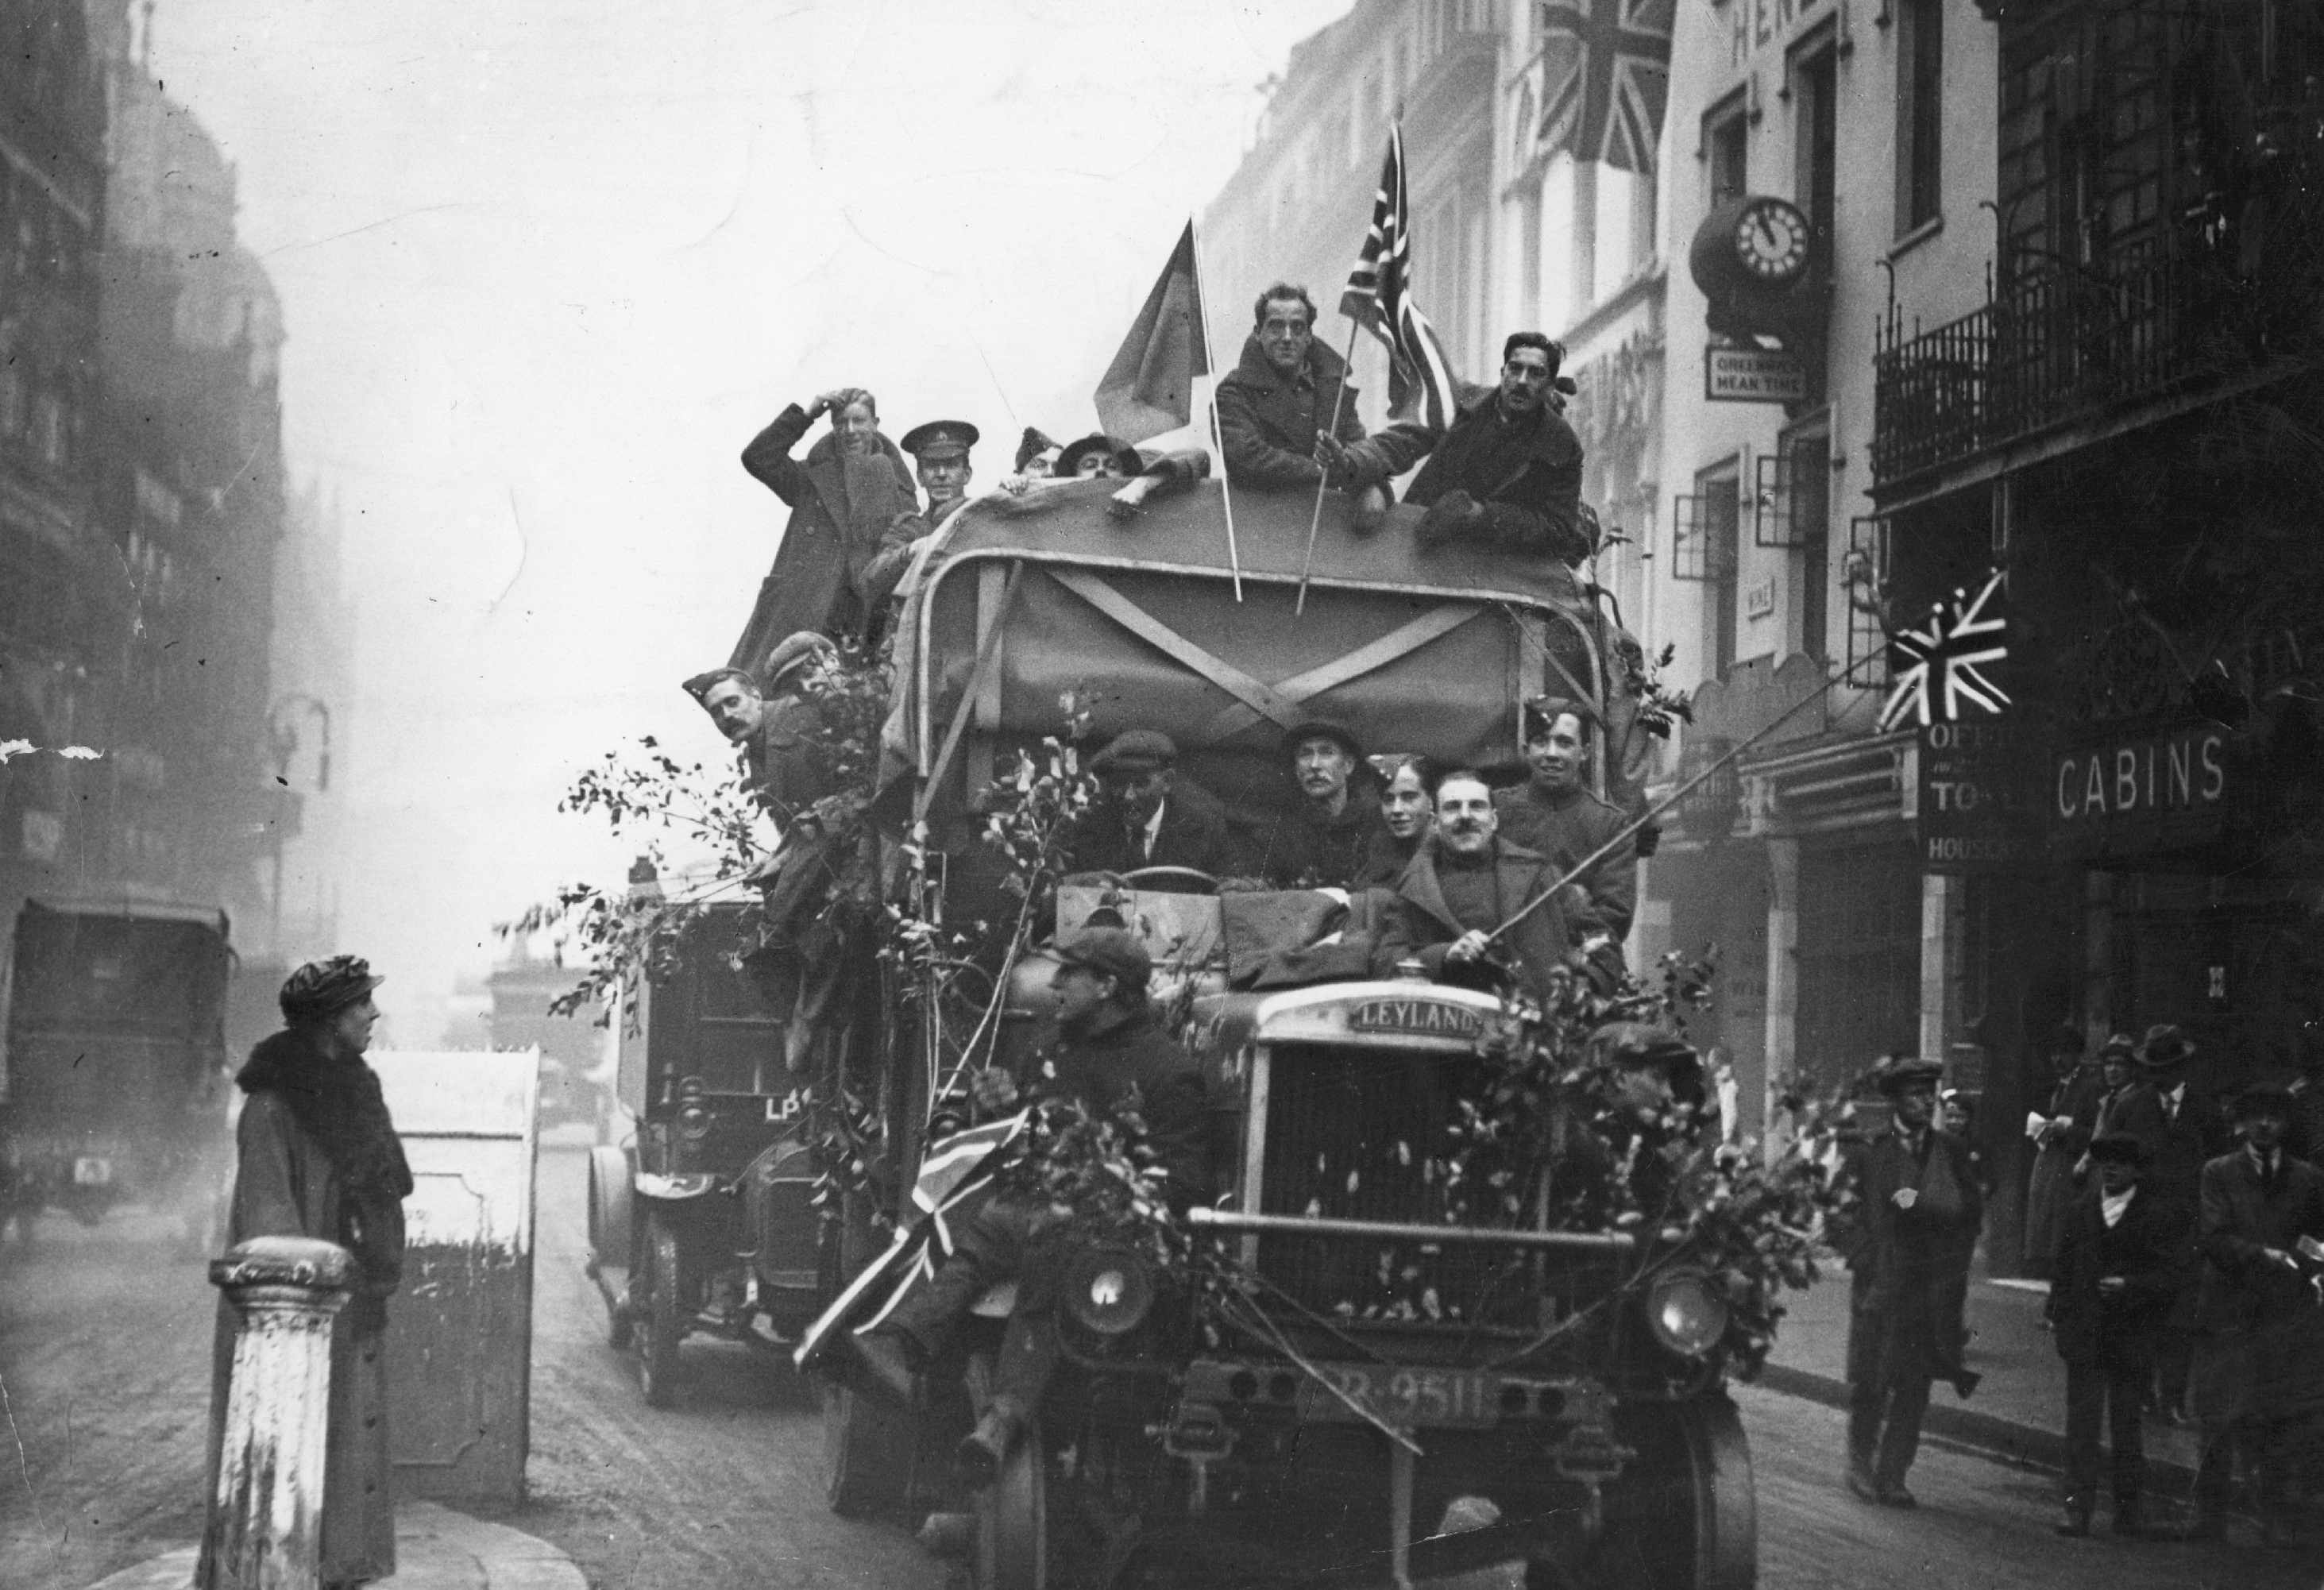 11th November 1918: An army lorry in a London street on Armistice Day, carrying jubilant passengers. (Photo by Topical Press Agency/Getty Images)